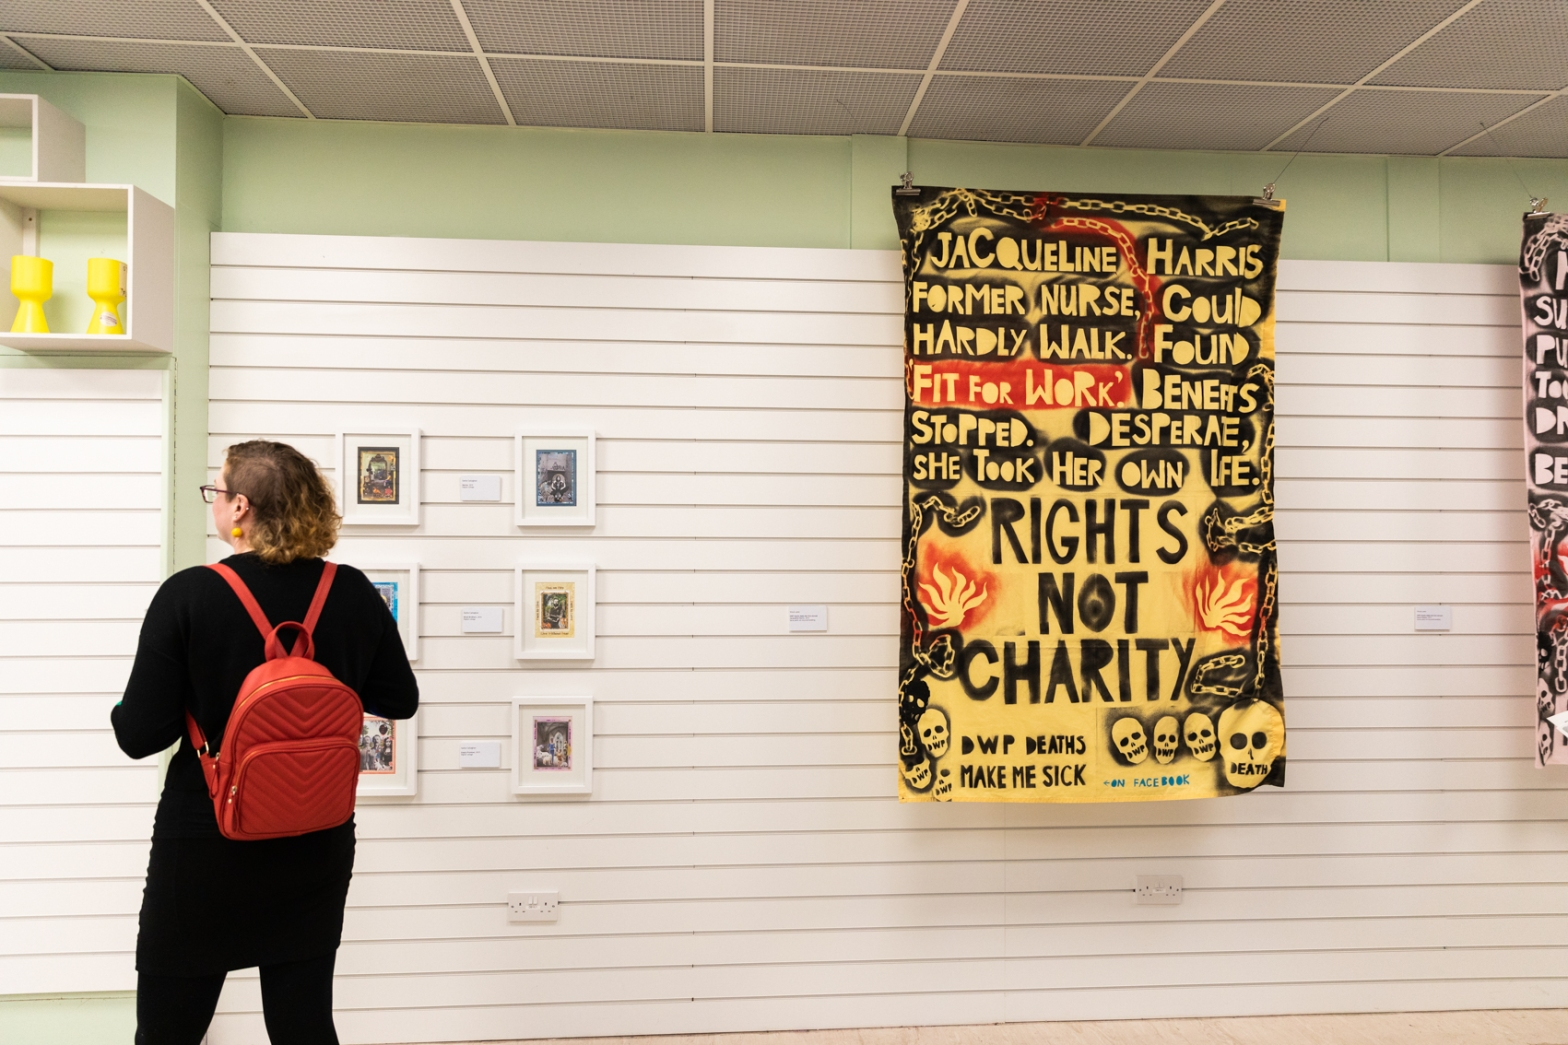 """Inside the exhibition, a woman reads the introductory text to her left (the text is out of shot). Before her on the wall, Sasha Callaghan's series of 6 digital collages, framed and in 3 rows of 2. To the right is one of Vince Laws' stencilled shrouds, the prominent message reading """"RIGHTS NOT CHARITY""""."""